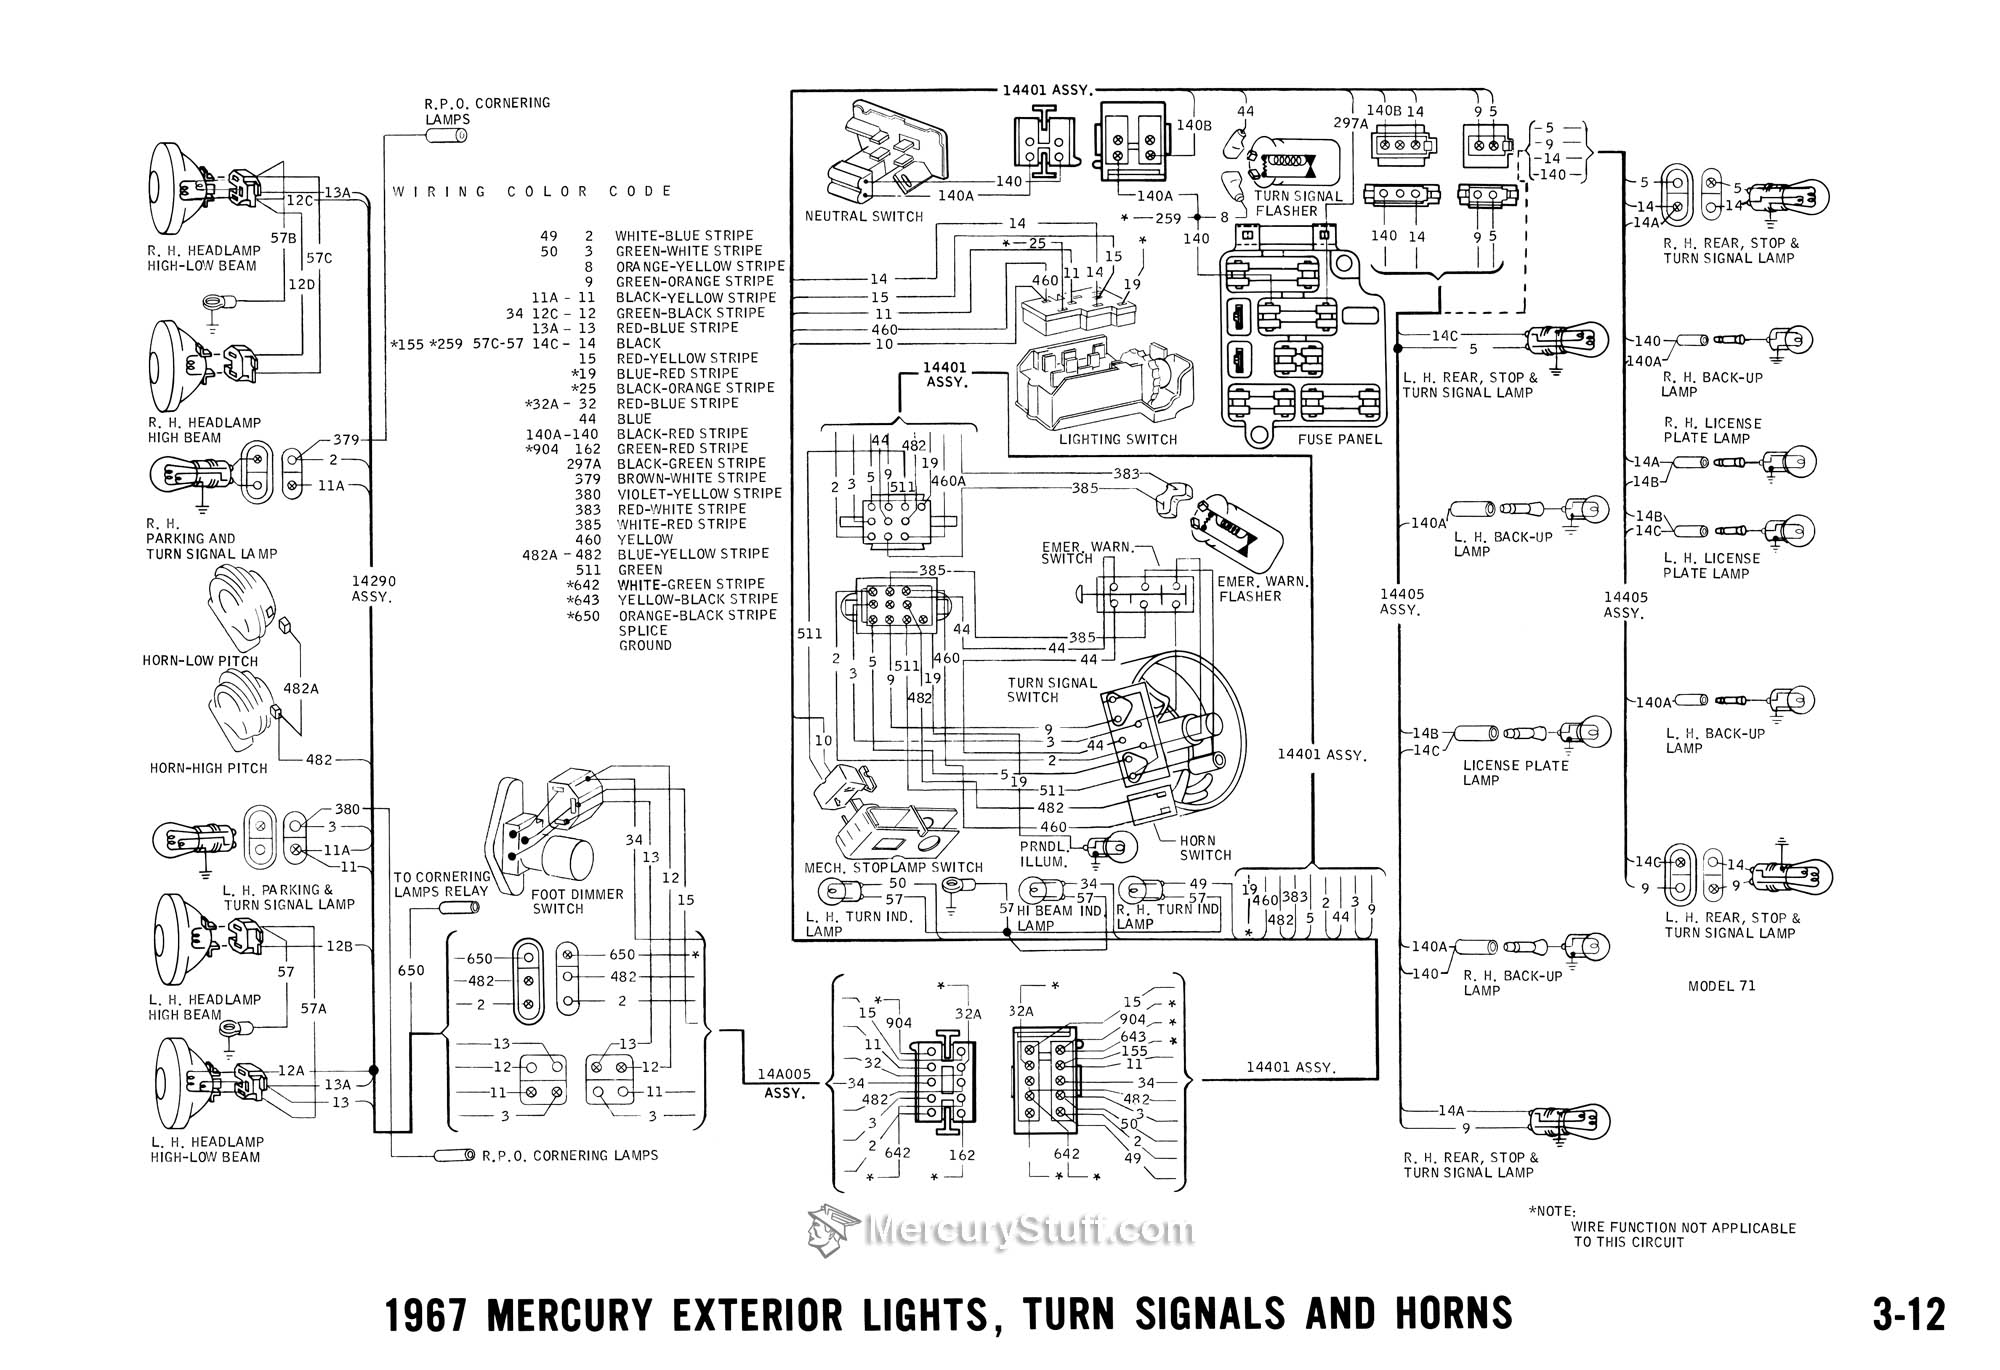 1967 mercury exterior lights turn signals horns wiring diagram 2006 mercury grand marquis the wiring diagram mercury 14 pin wiring harness diagram at mifinder.co